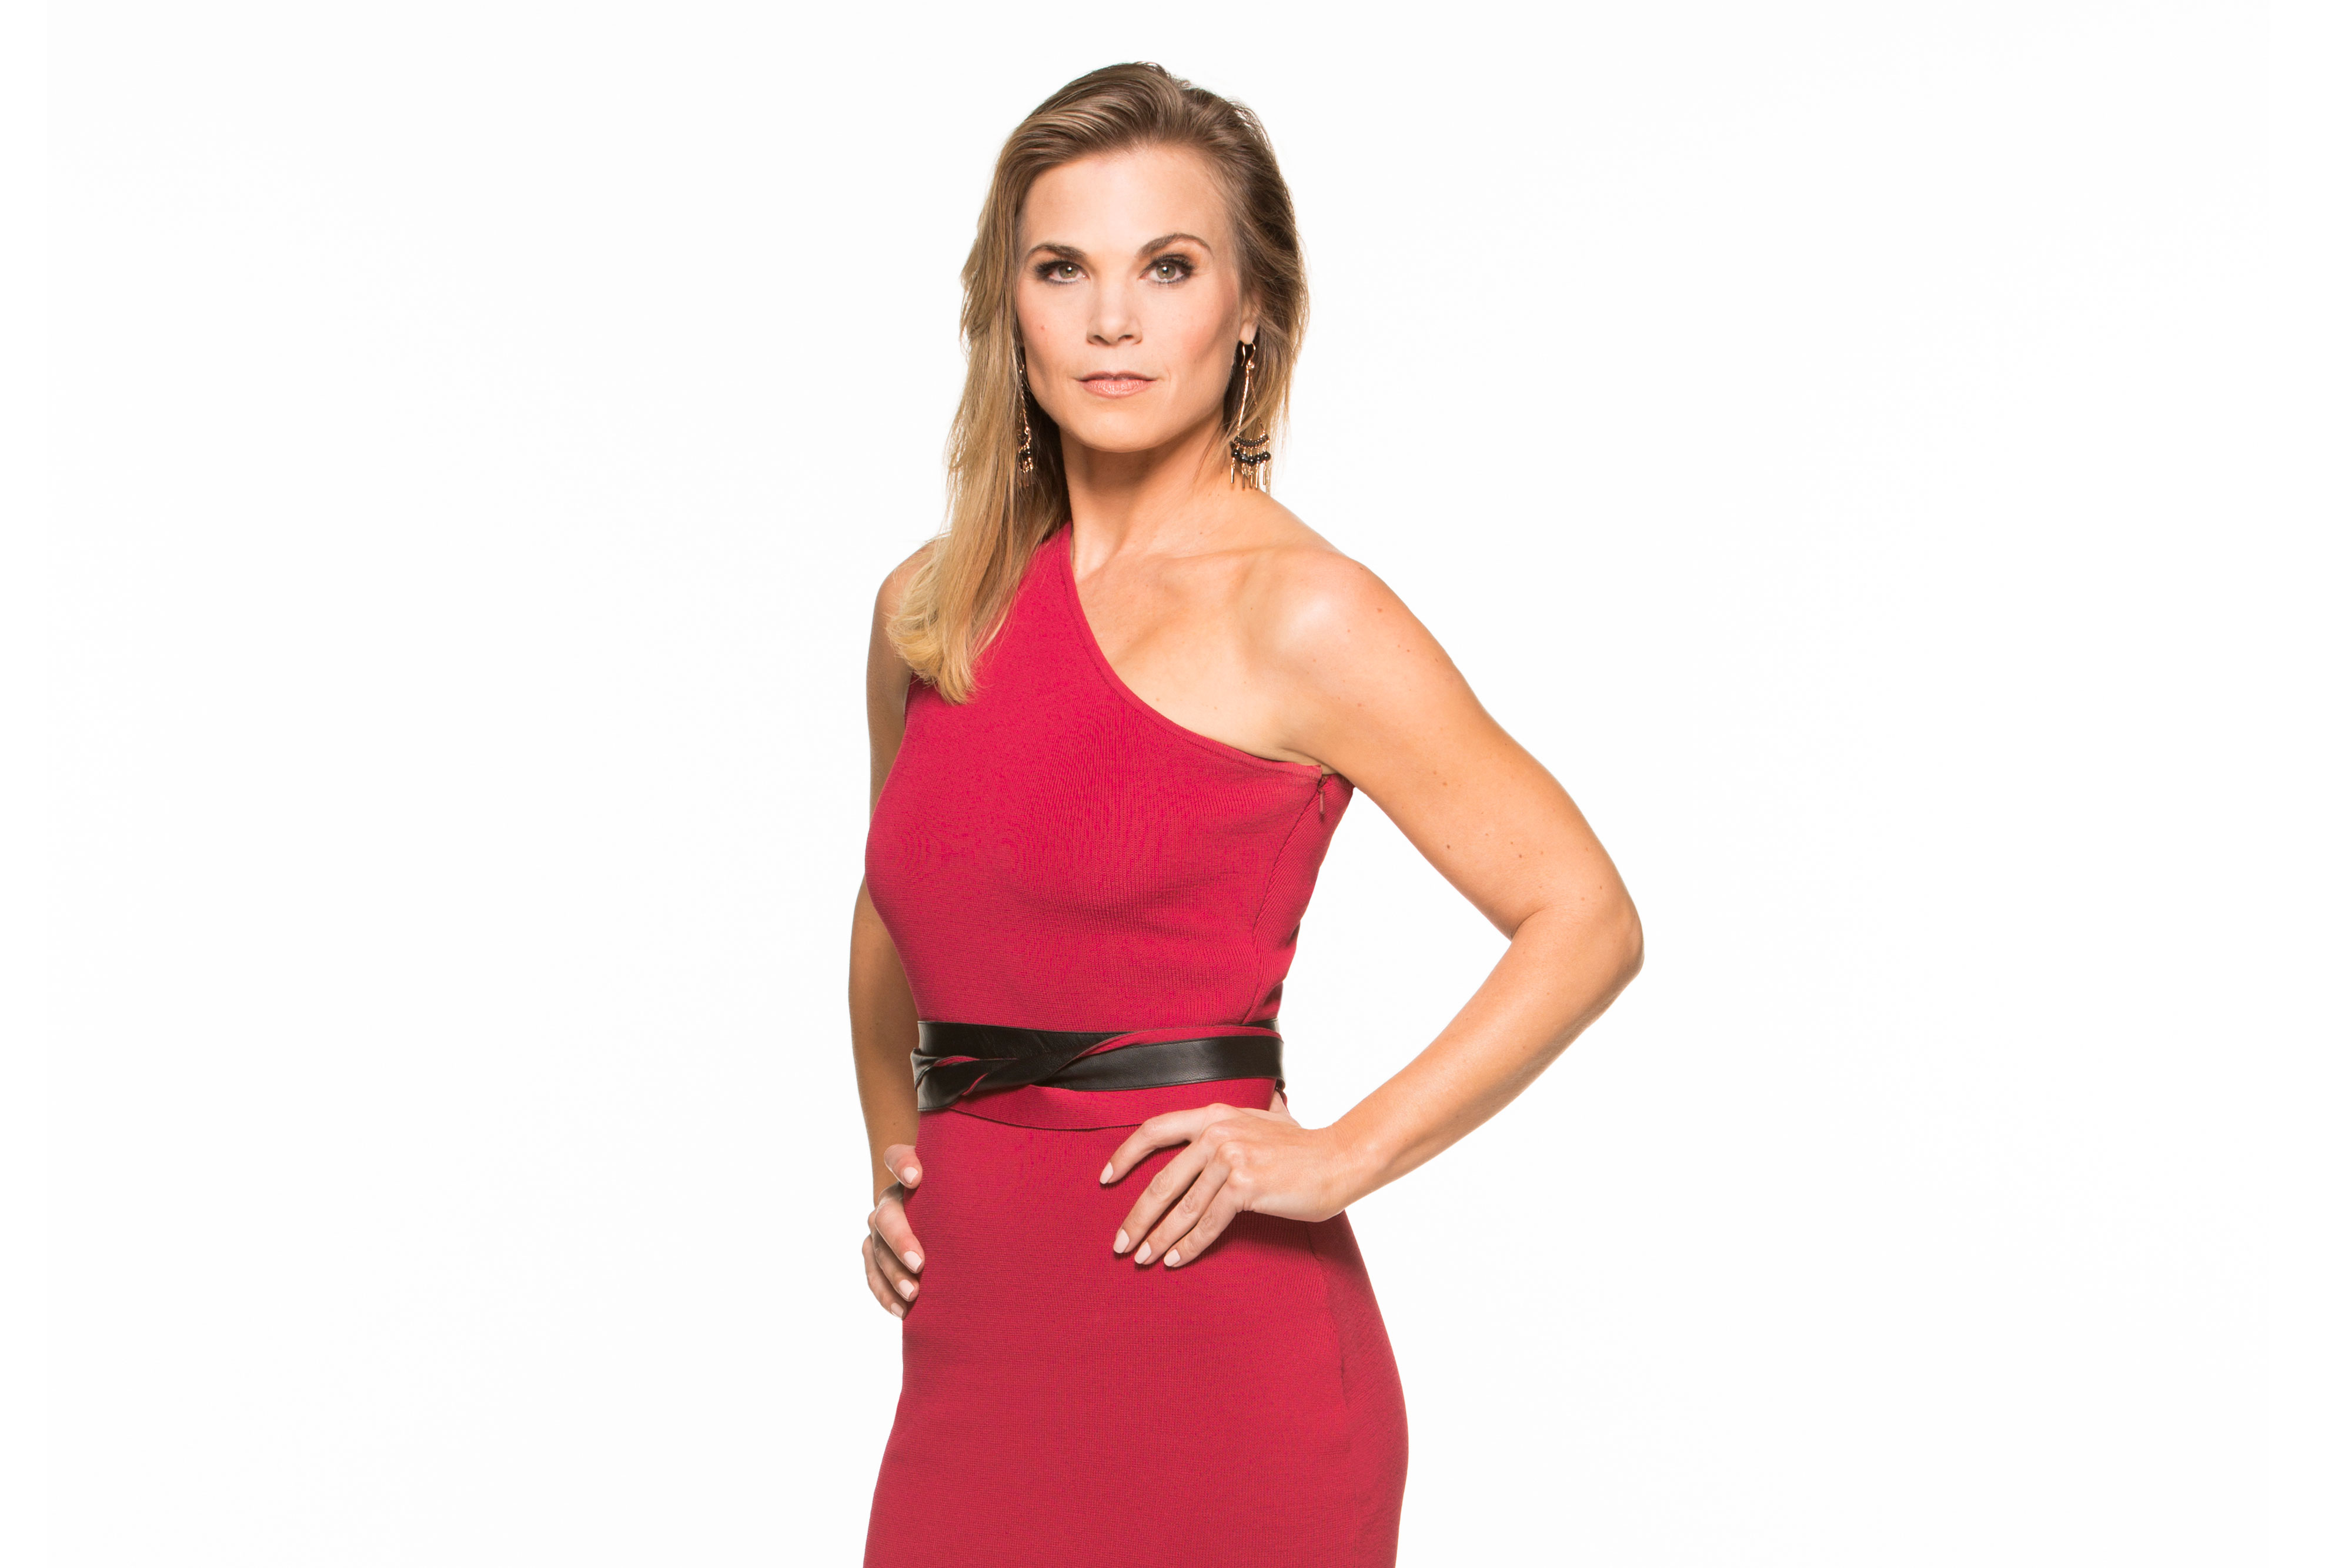 Exclusive Y&R Interview: Gina Tognoni Kiss and Tells About Billy And Jack!